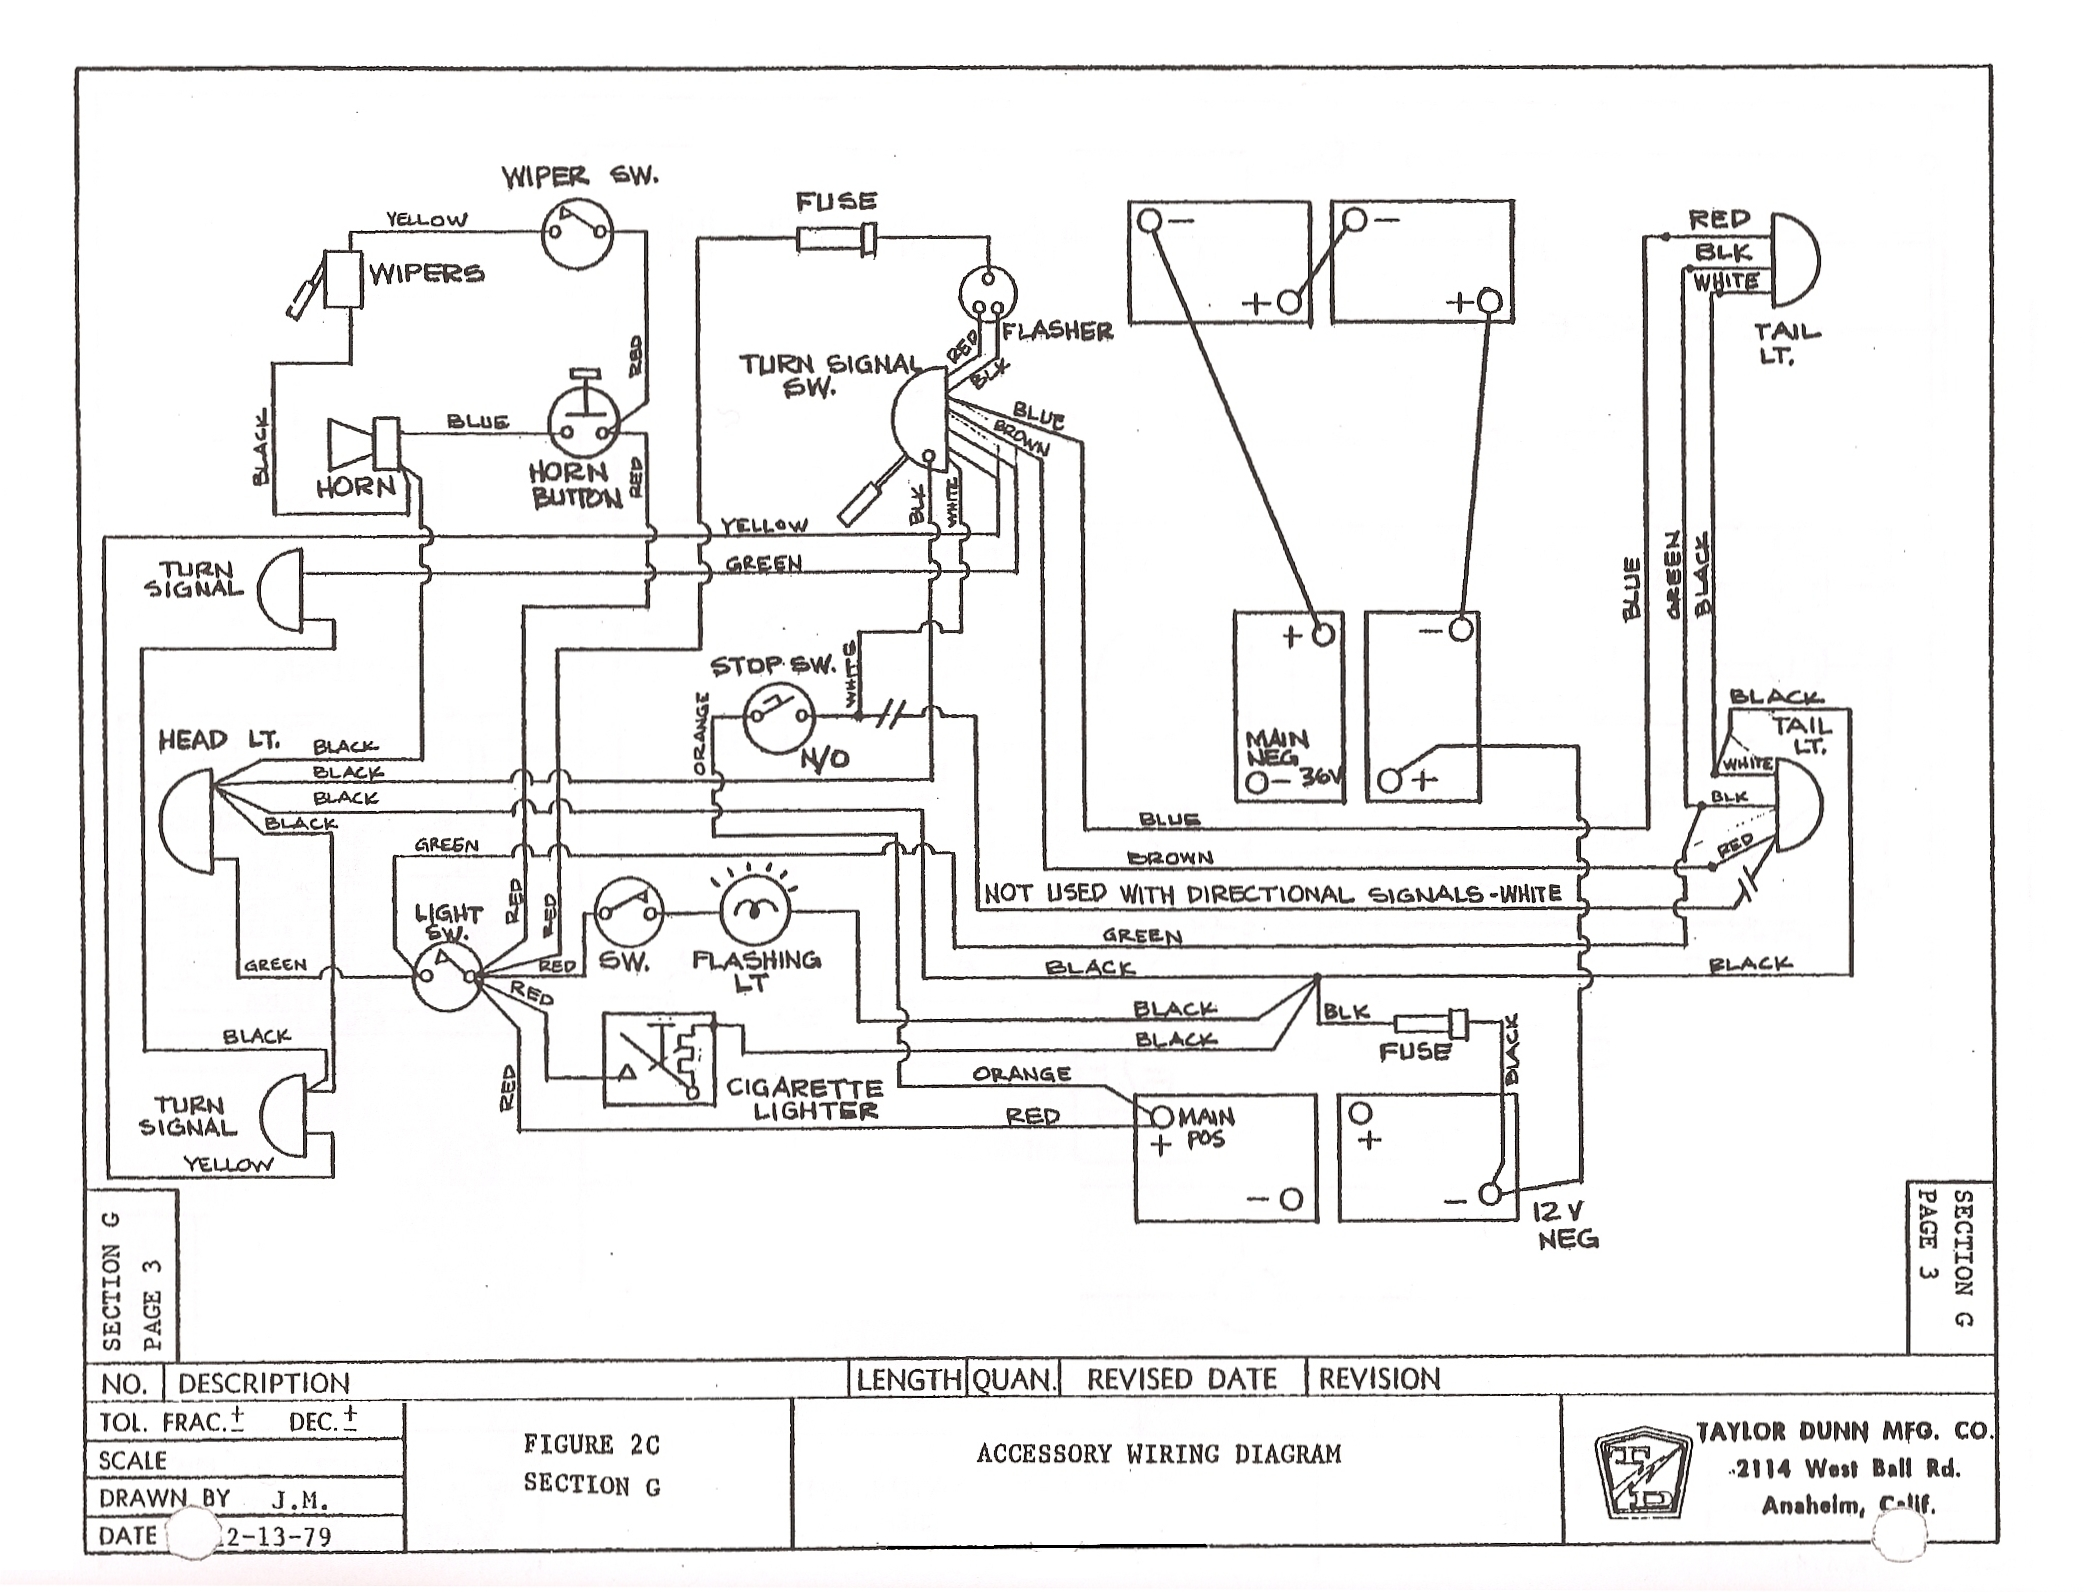 TD_GT370_71_81to85_003 taylor dunn wiring diagram wiring diagram and schematic design trident gas control panel wiring diagram at aneh.co